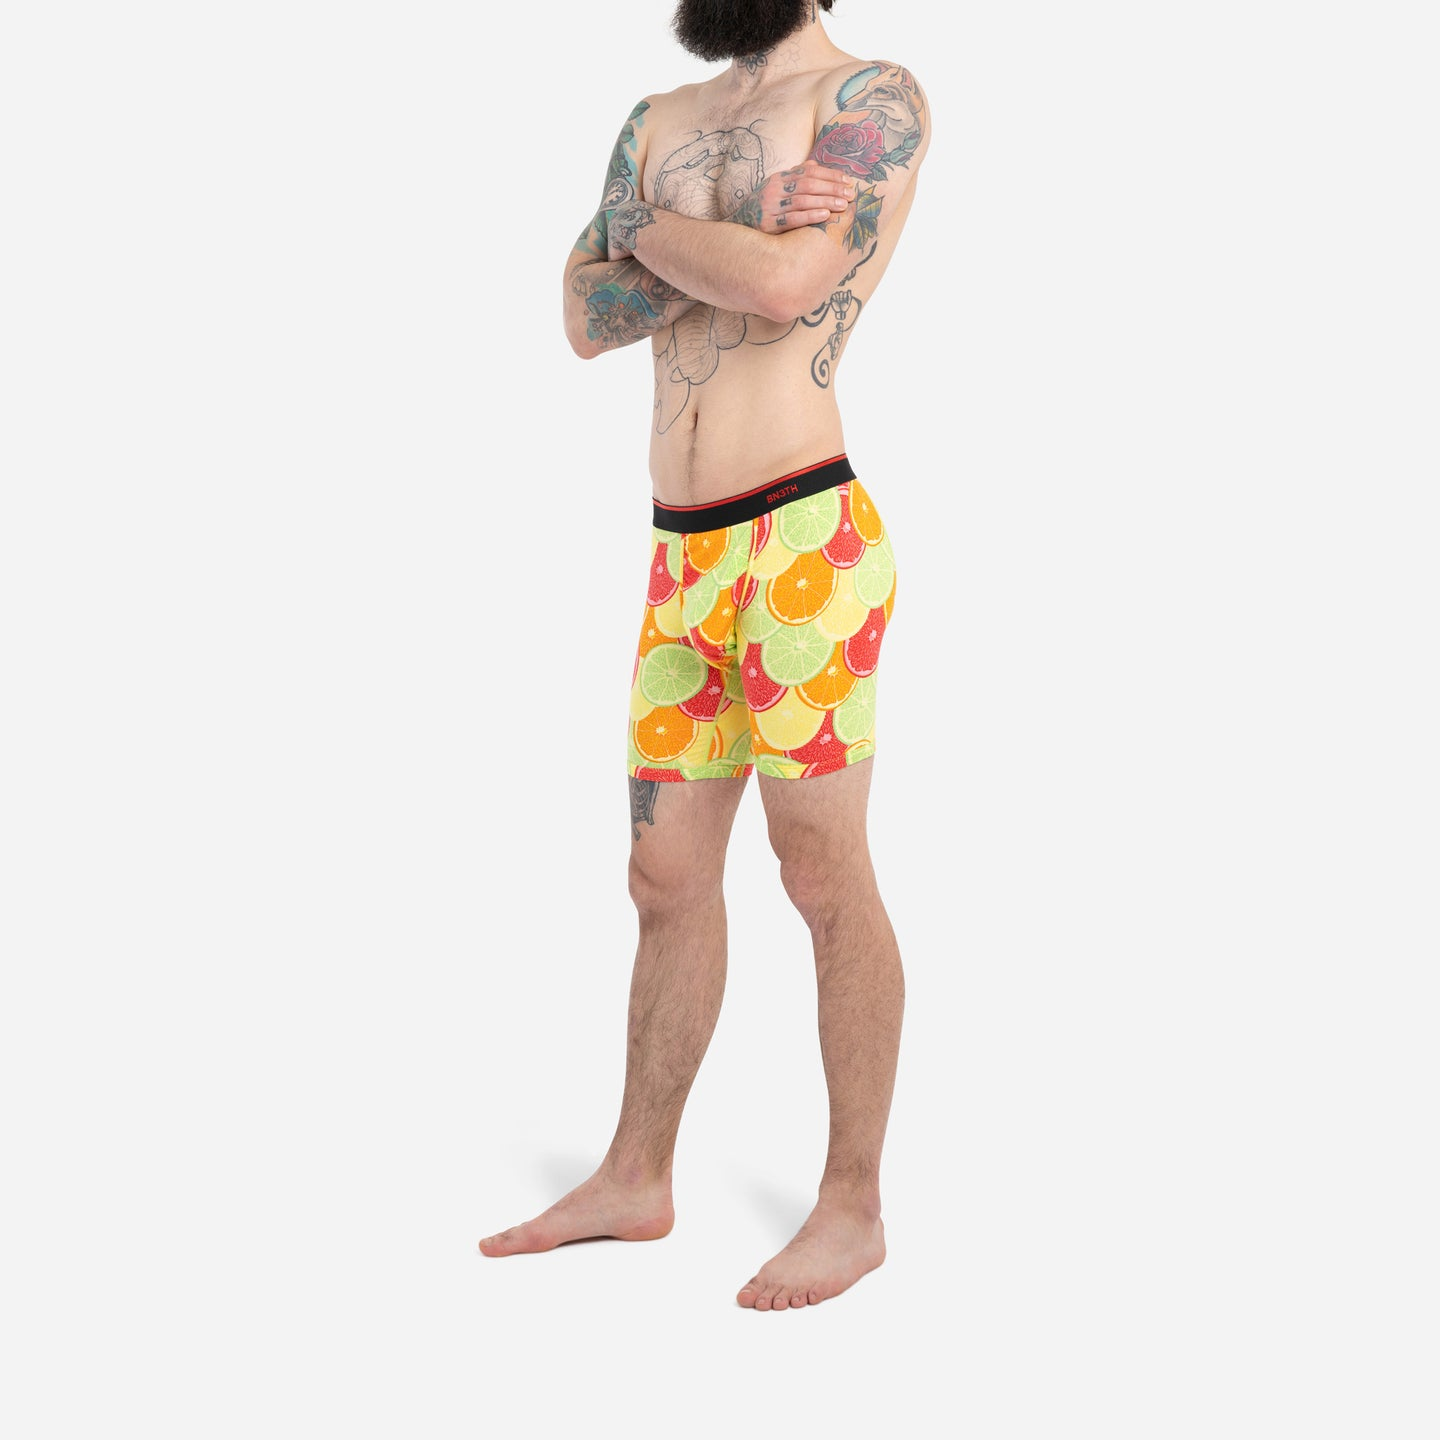 CLASSIC BOXER BRIEF : CITRUS